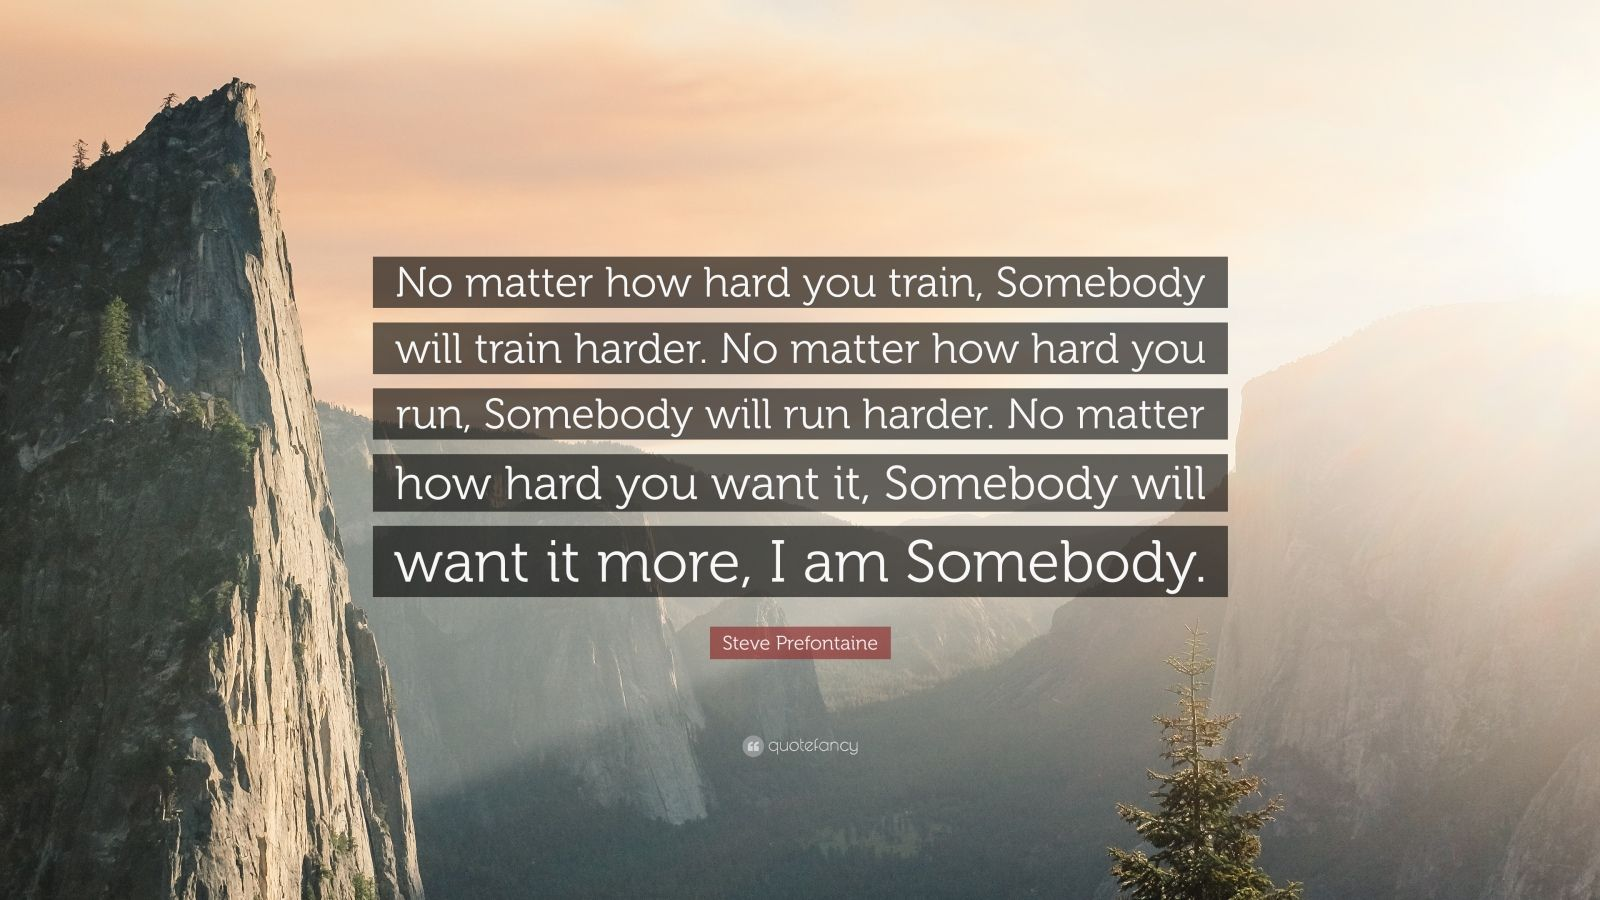 """Steve Prefontaine Quote: """"No matter how hard you train, Somebody will train harder. No matter how hard you run, Somebody will run harder. No matter how hard you want it, Somebody will want it more, I am Somebody."""""""